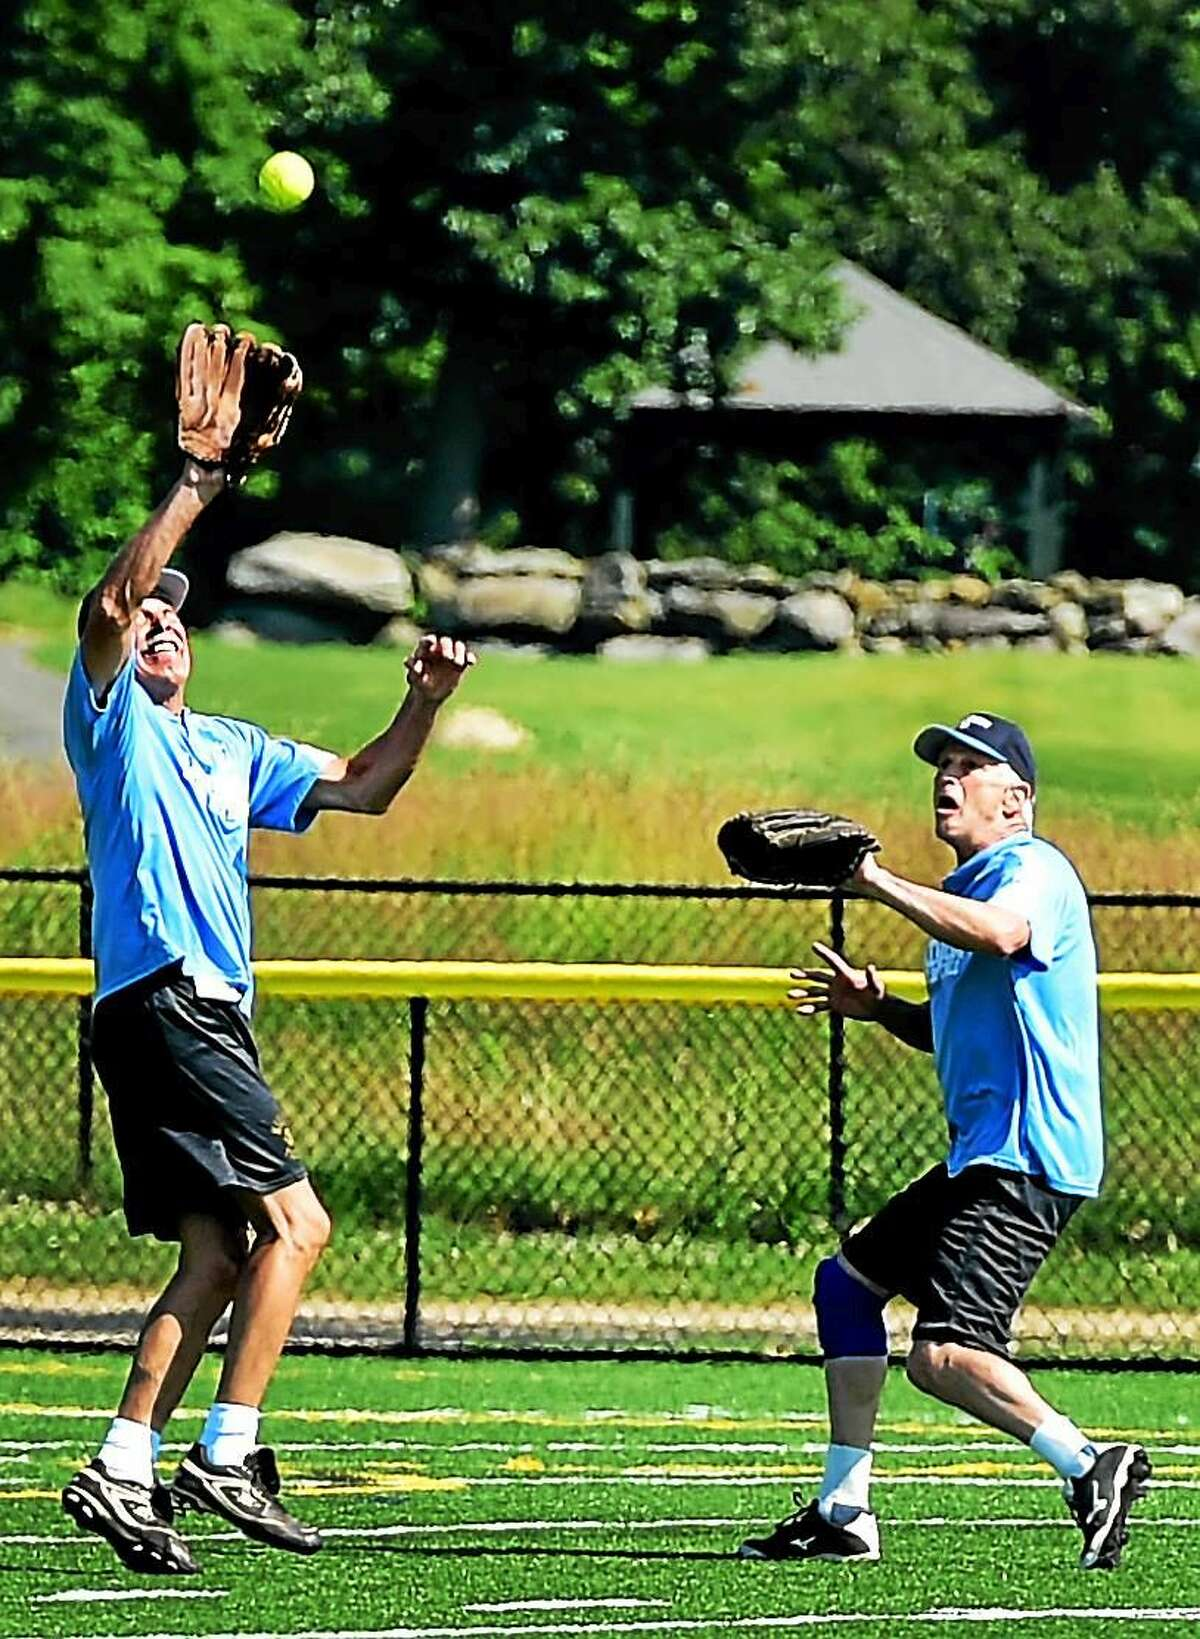 Charlie Corso of Madison, left, of the Devils softball team makes a catch in the outfield for an out as teammate Rob Clark of Killingworth backs him up during an over 65 softball league game at the Surf Club softball field in Madison, Connecticut Tuesday, March 30, 2015.